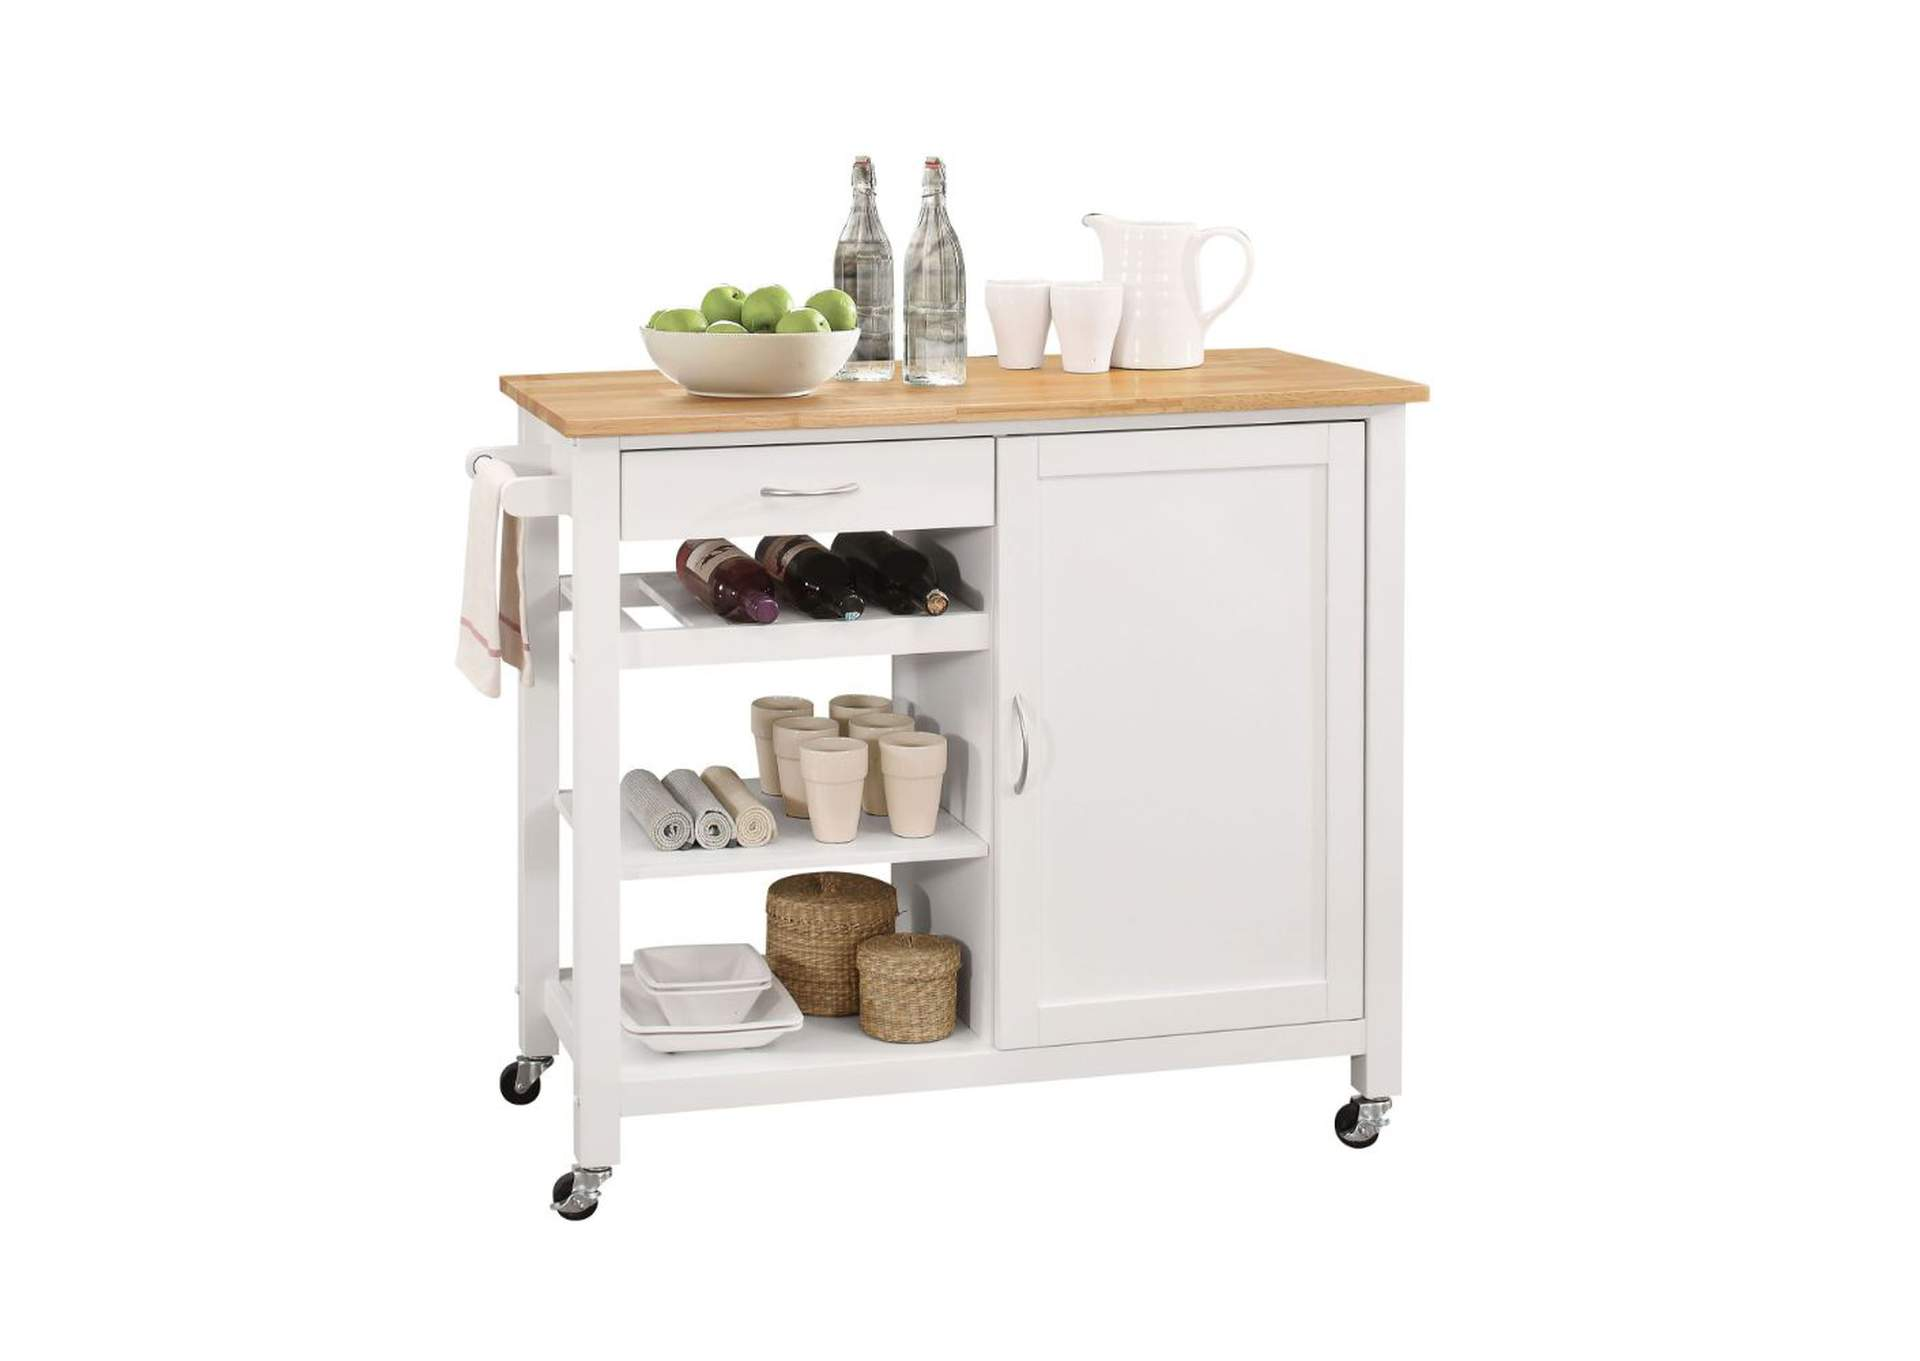 Ottawa Natural & White Kitchen Cart,Acme